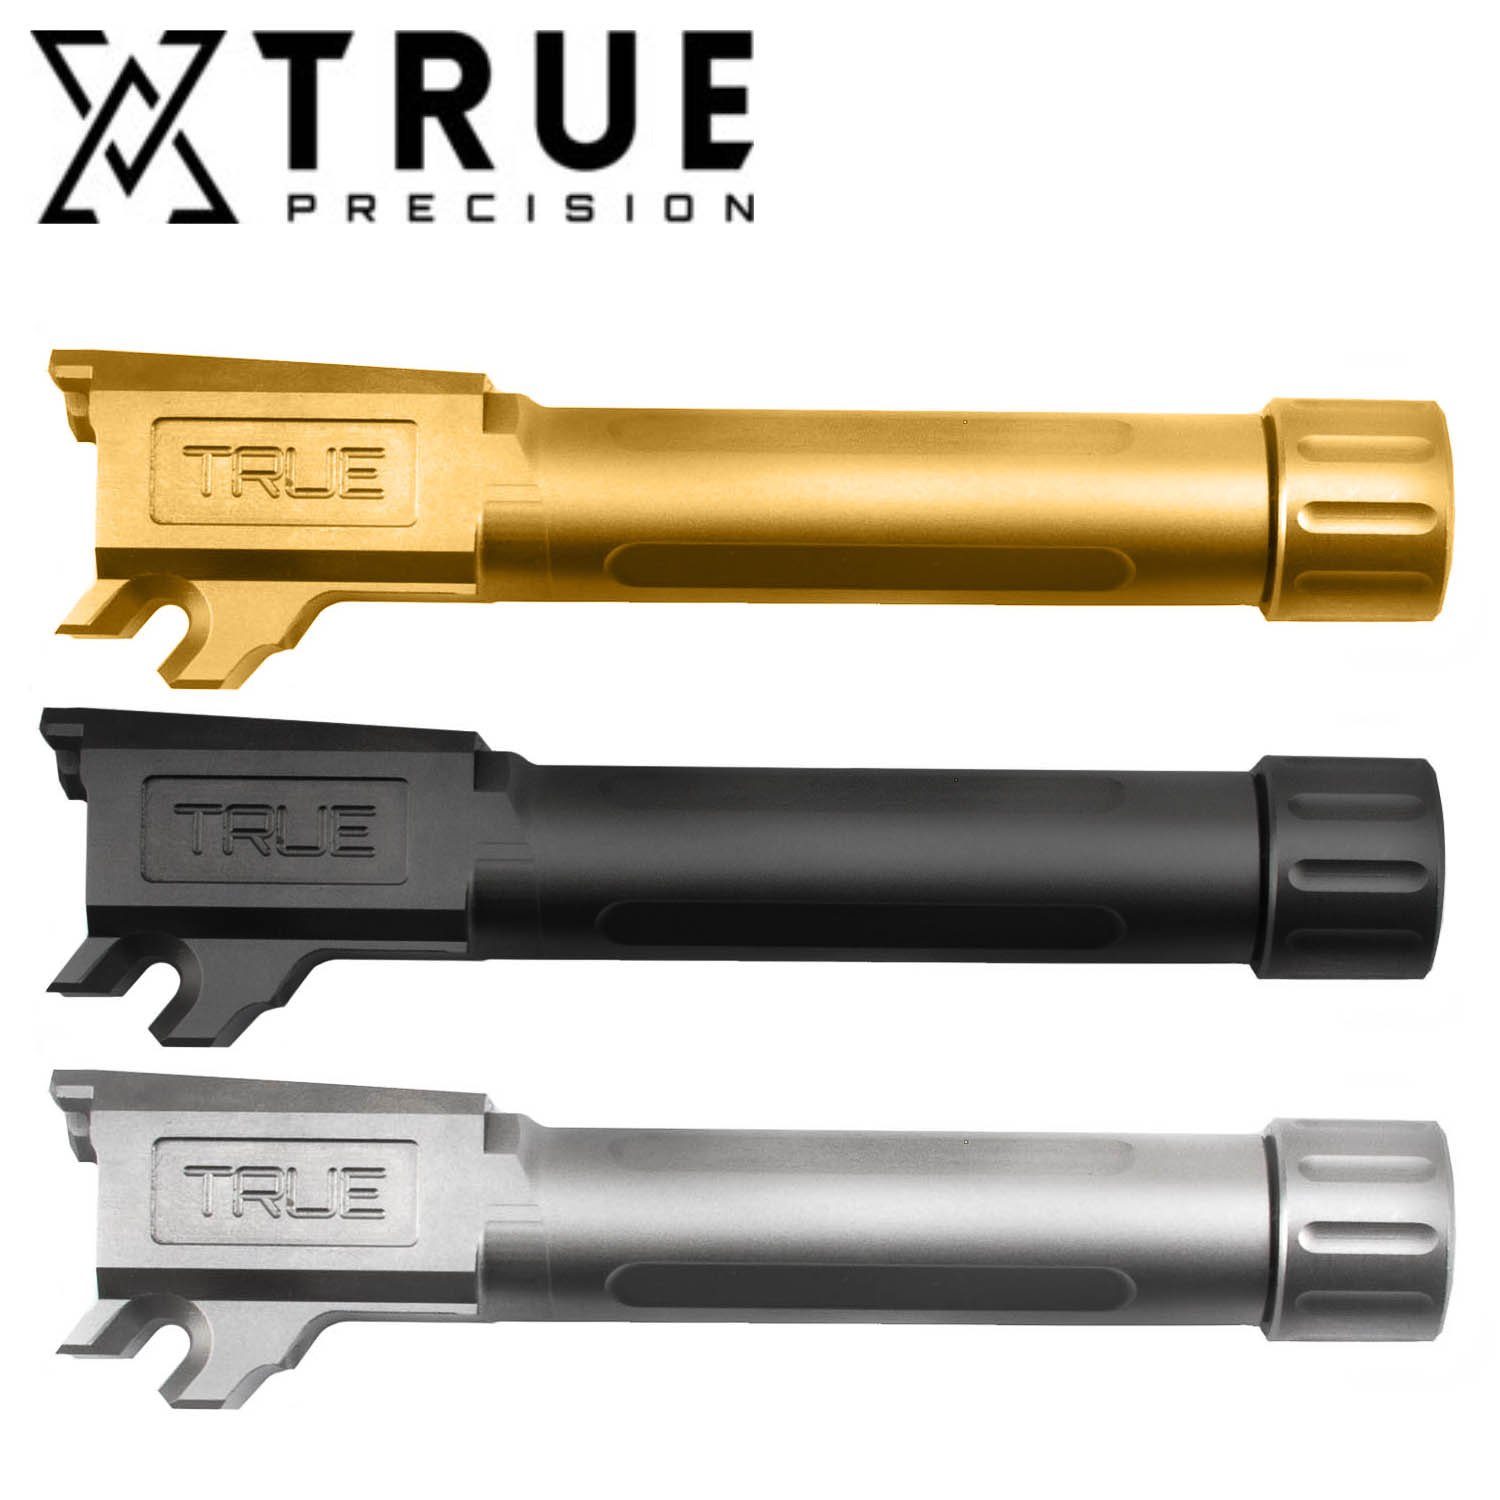 True Precision Sig P365 Threaded Barrel, 9mm: Midwest Gun Works